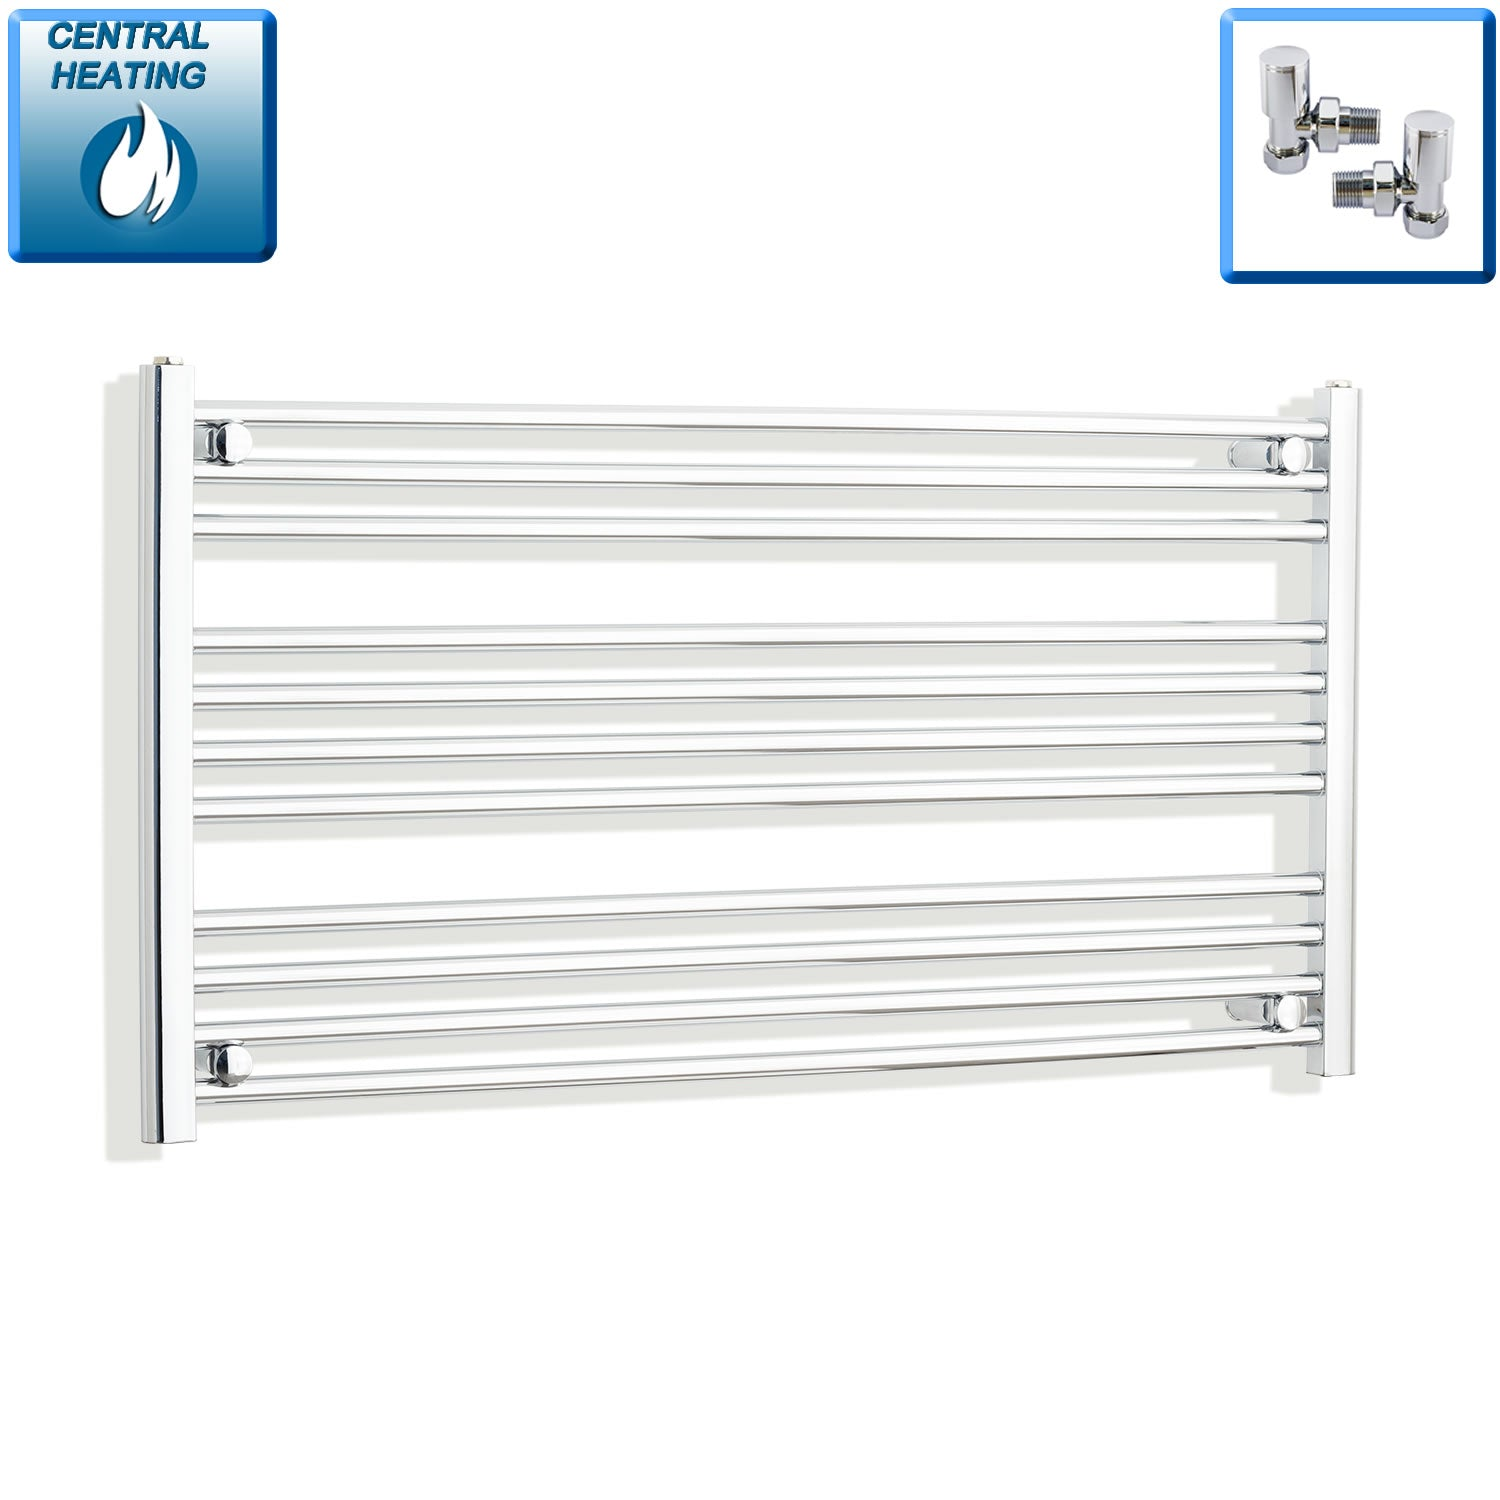 1300mm Wide 800mm High Chrome Towel Rail Radiator With Angled Valve